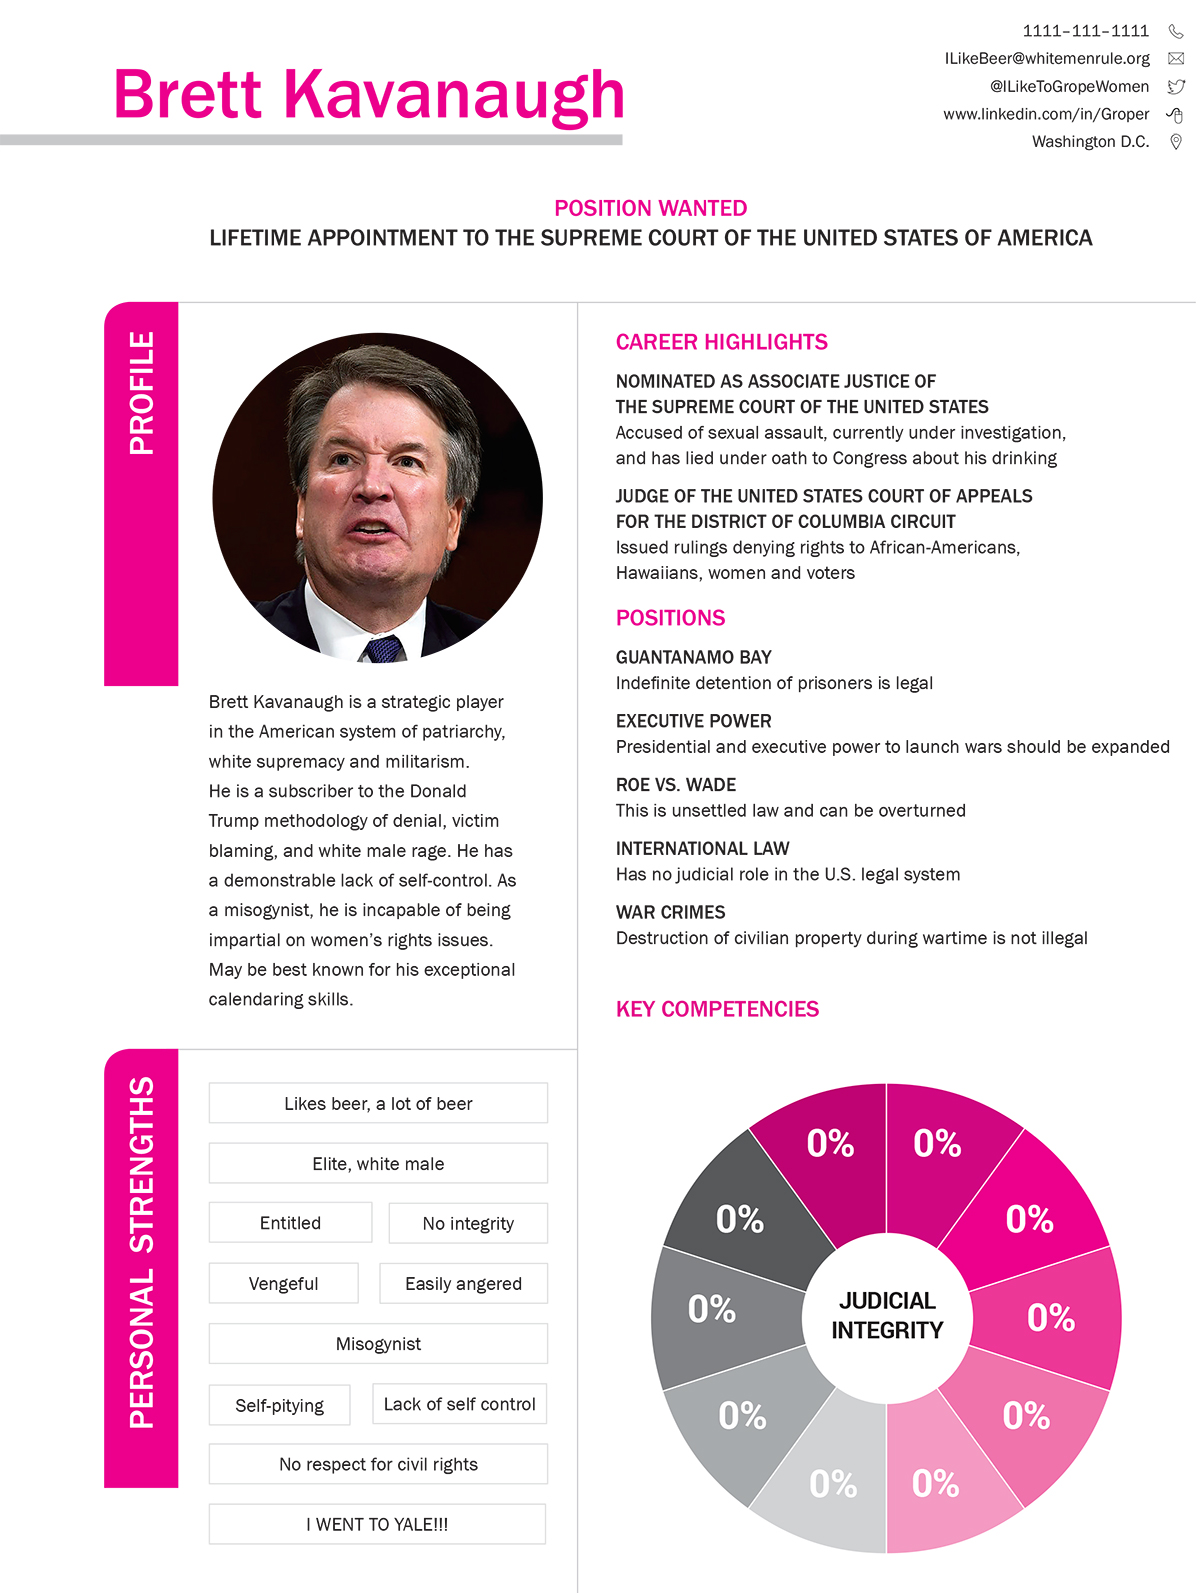 Kavanaugh_Resume2.jpg